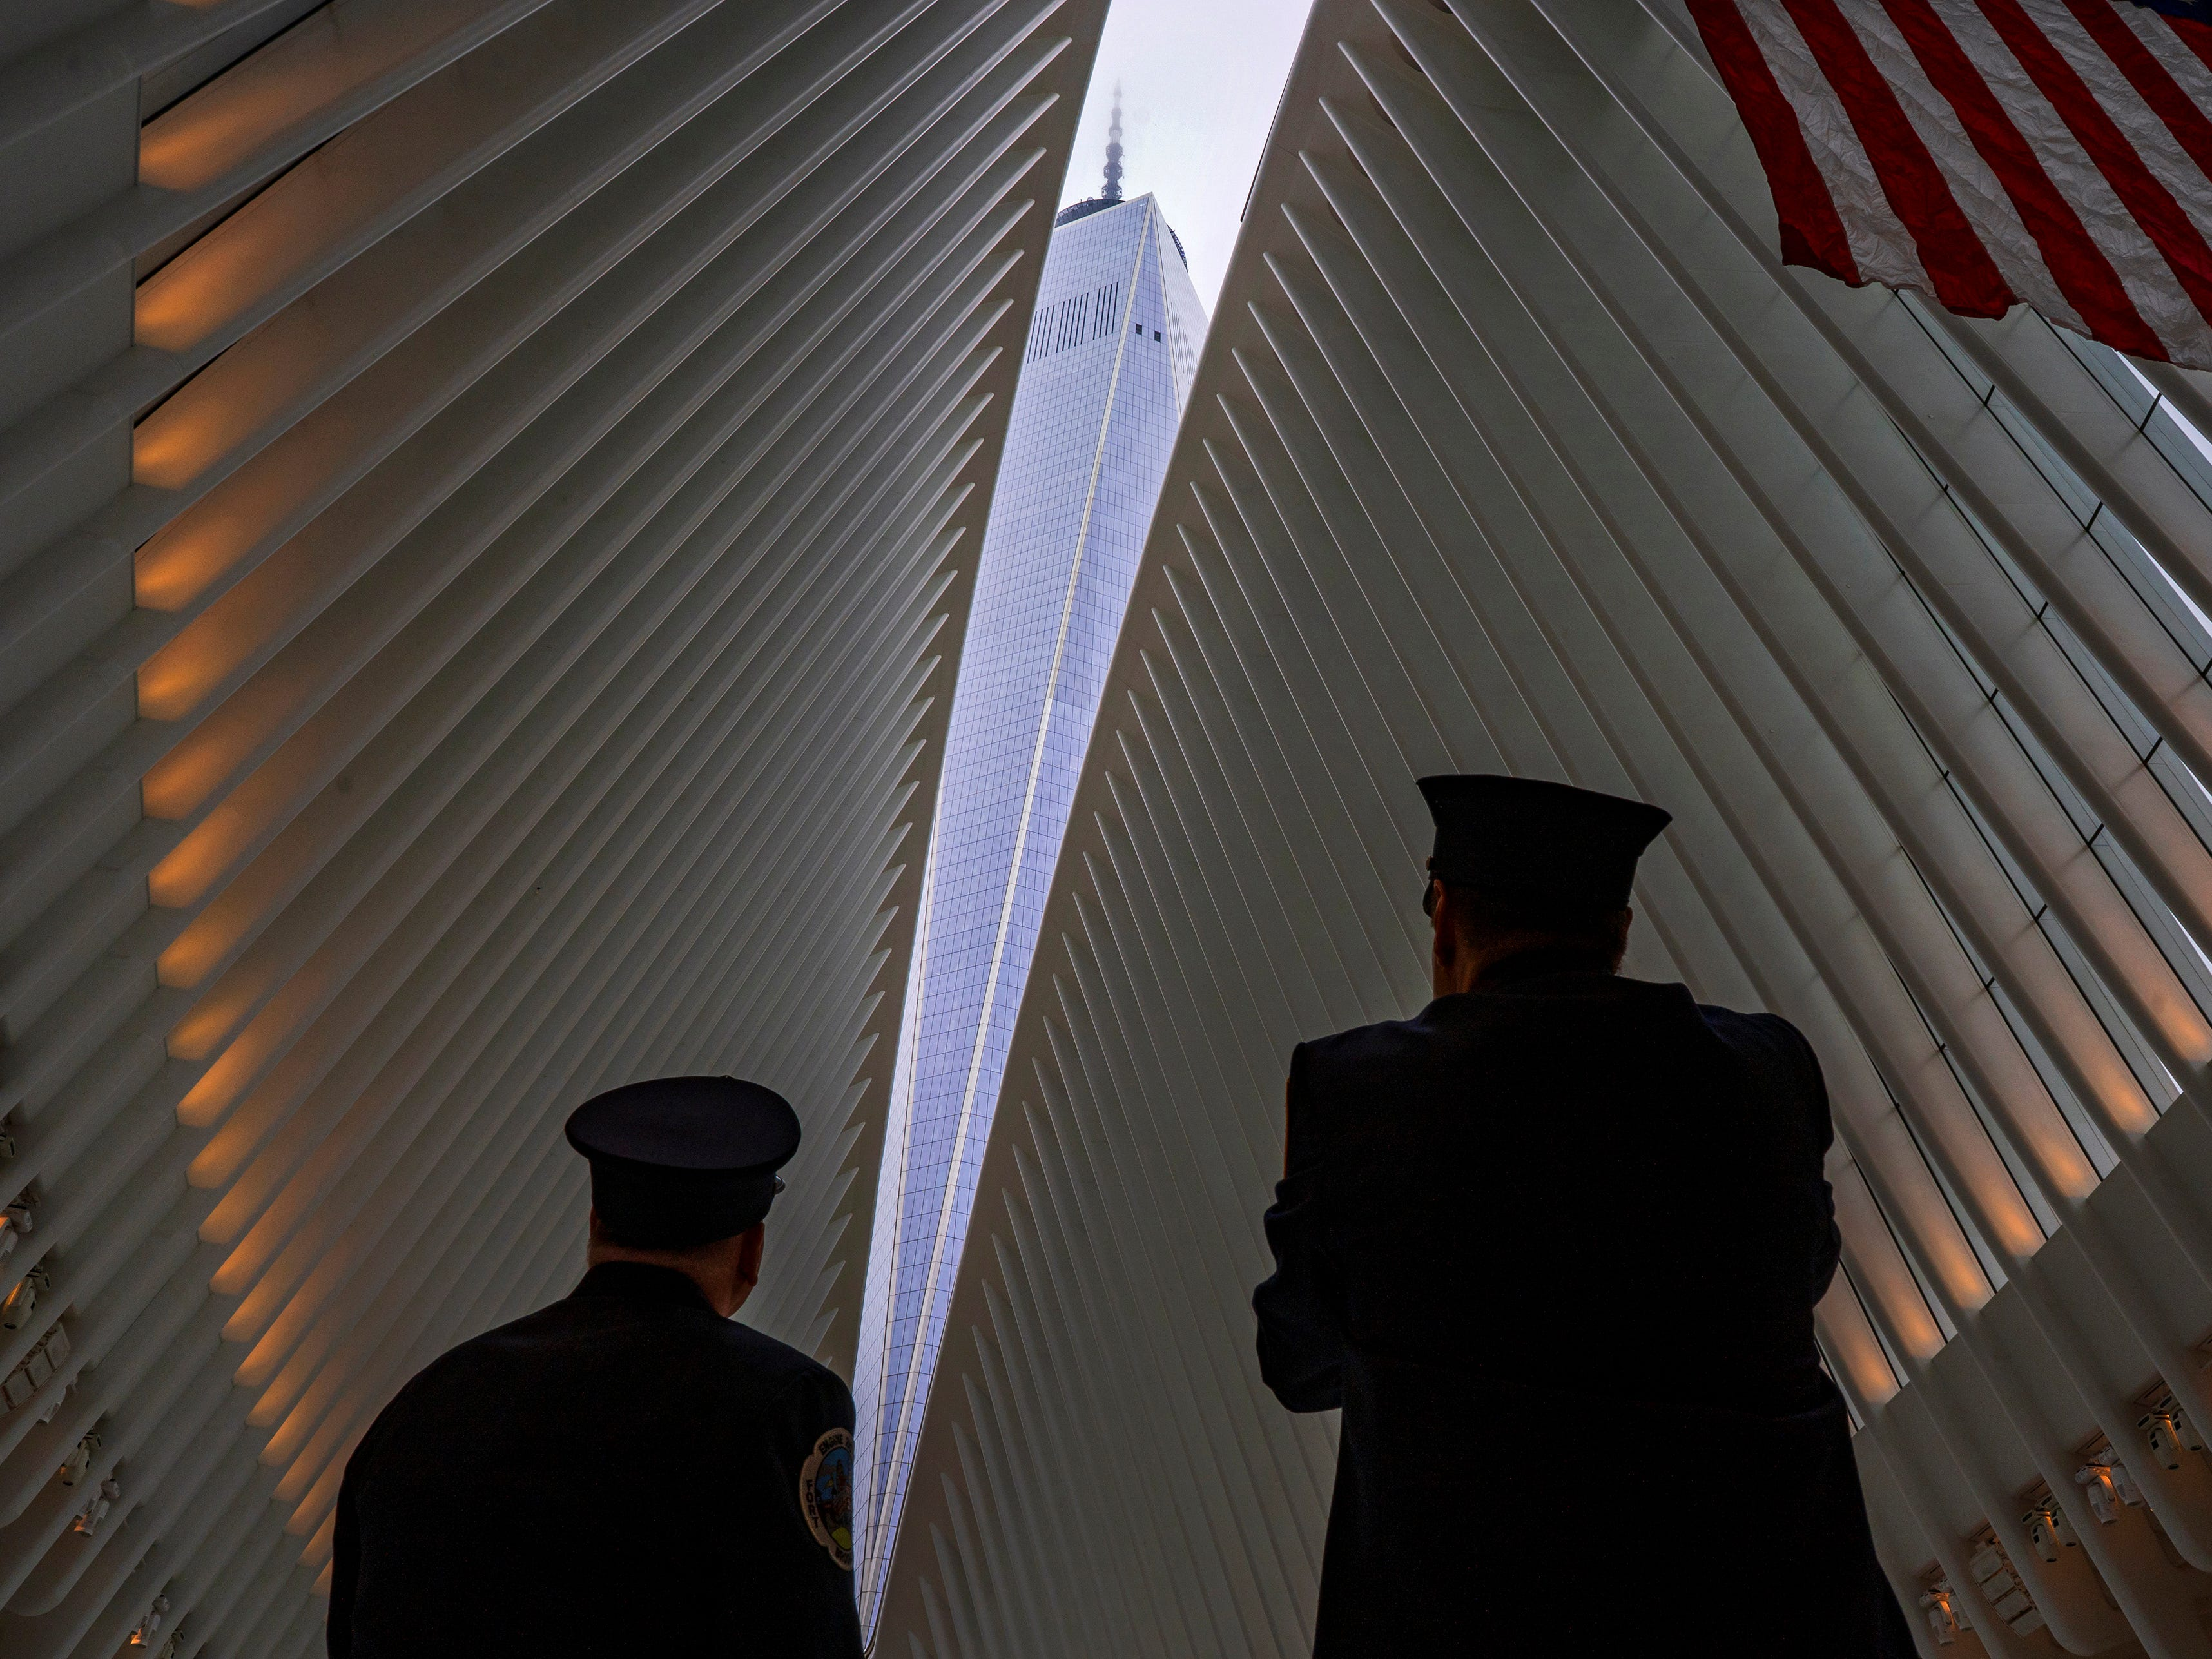 Two members of the New York City fire department look towards One World Trade Center through the open ceiling of the Oculus, part of the World Trade Center transportation hub in New York, on Sept. 11, 2018. The transit hall ceiling window was opened just before 10:28 a.m., marking the moment that the North Tower of the World Trade Center collapsed on September 11, 2001.